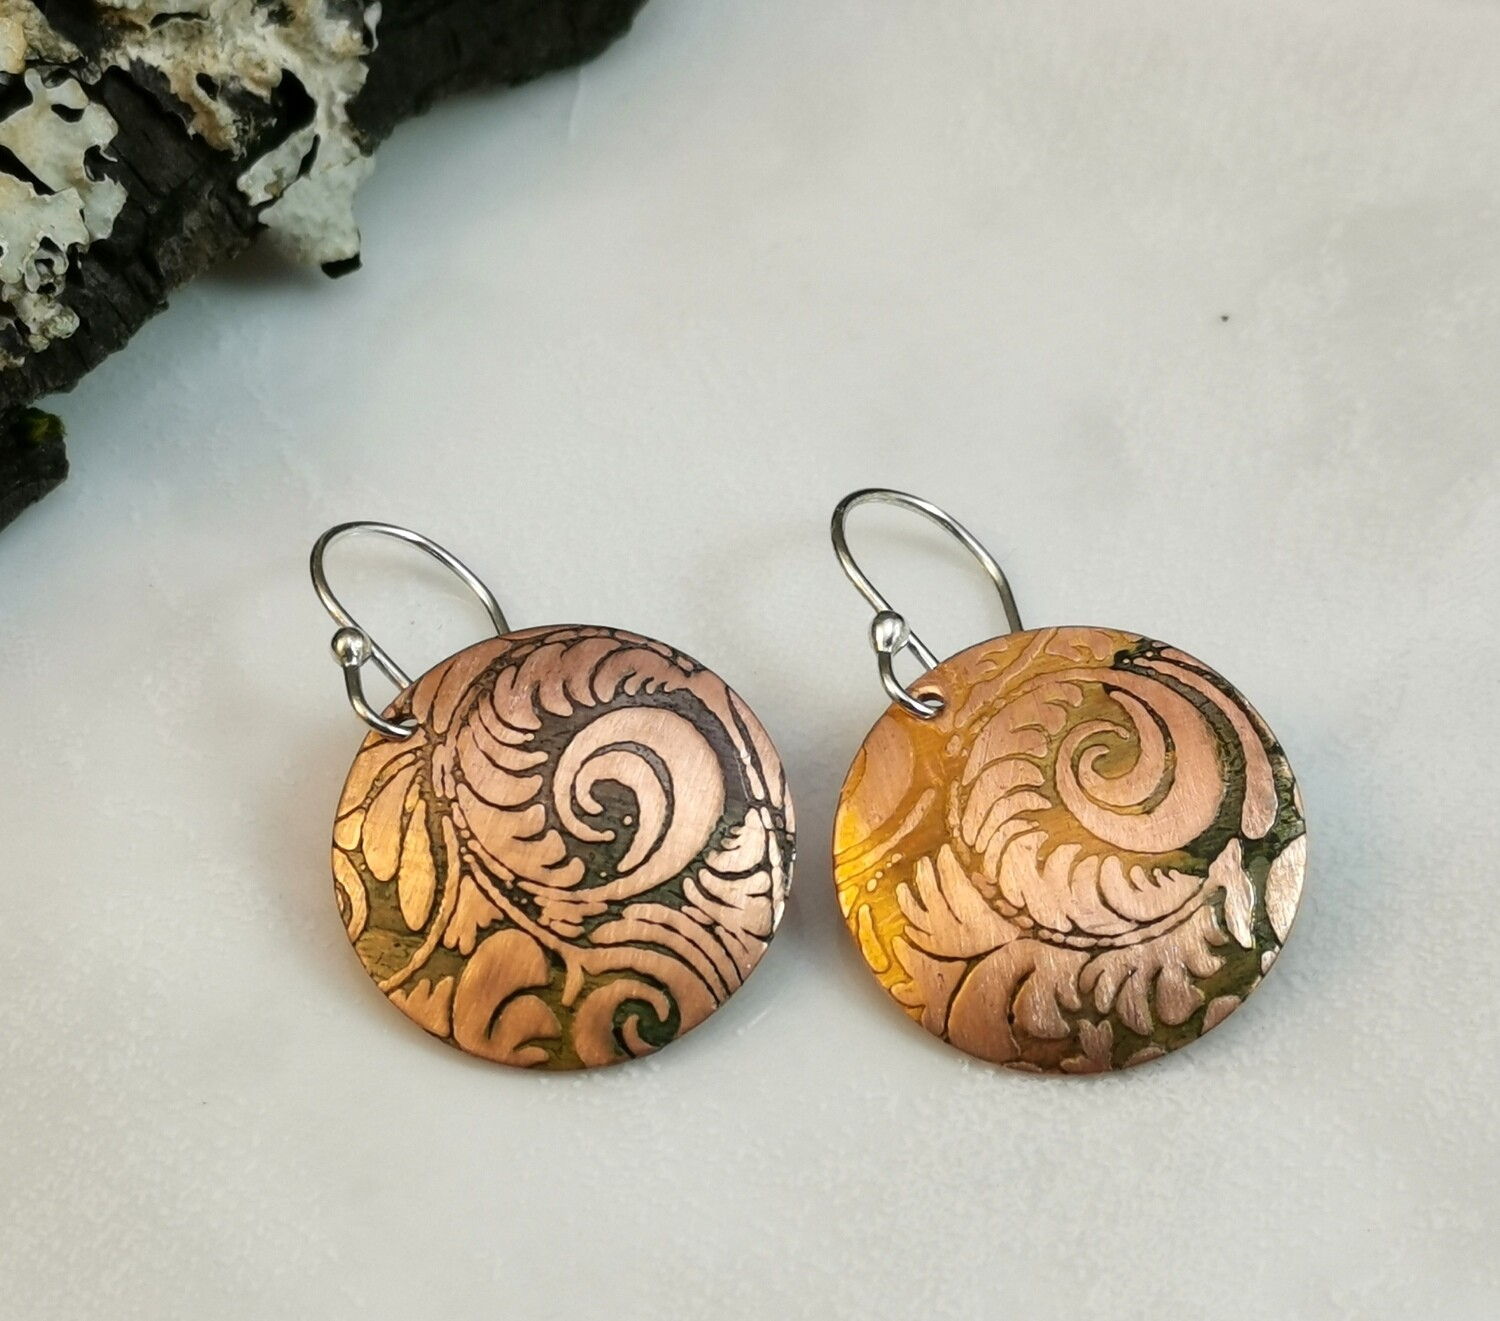 Hand Painted Flower Patterned Copper Earrings with Hues of Green and Gold on Sterling Silver Ear Wires